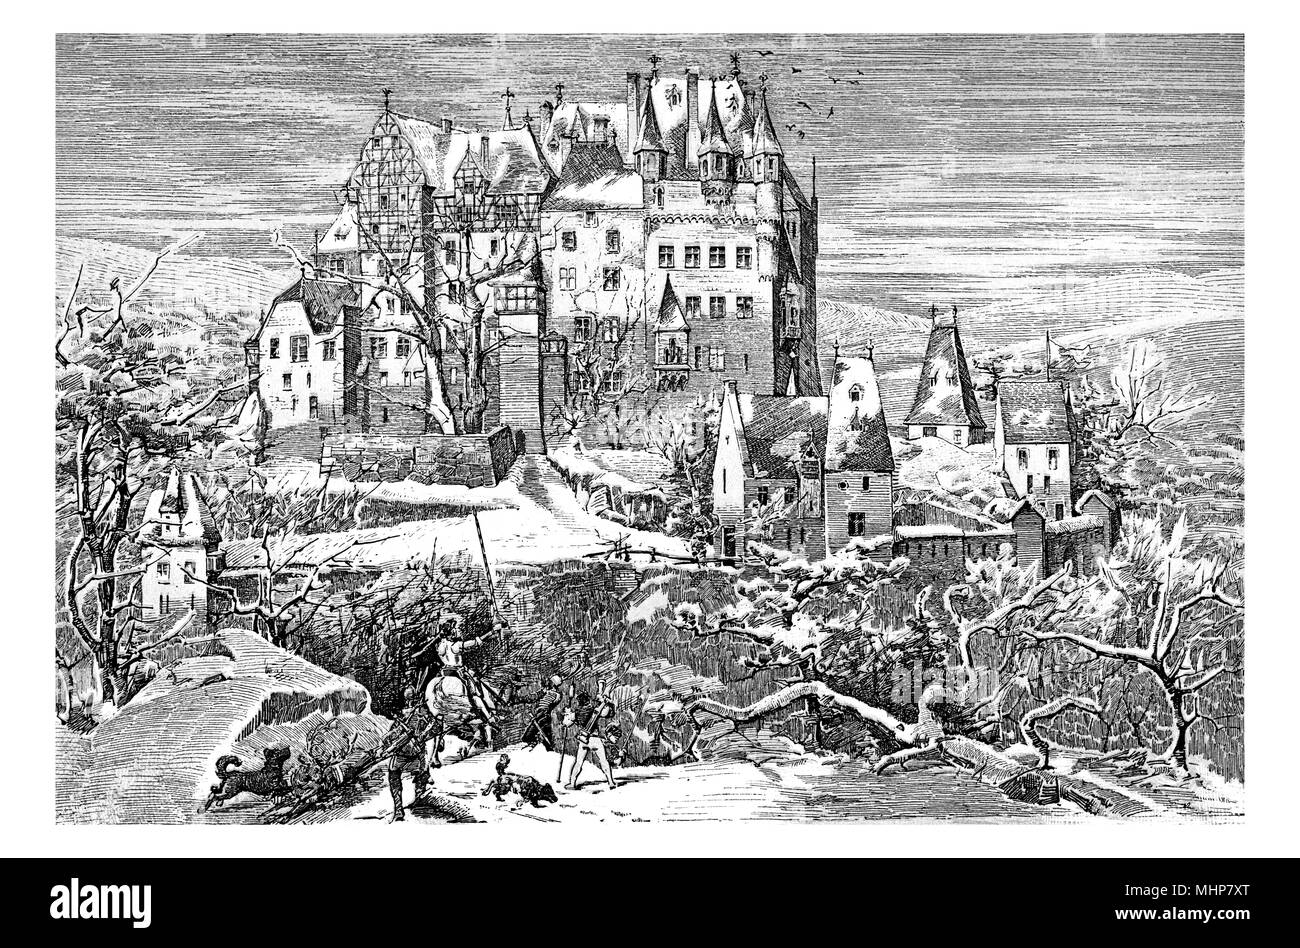 Germany - Winter view of gothic Eltz castle nestled above the Moselle river built in the XII century, vintage engraving - Stock Image